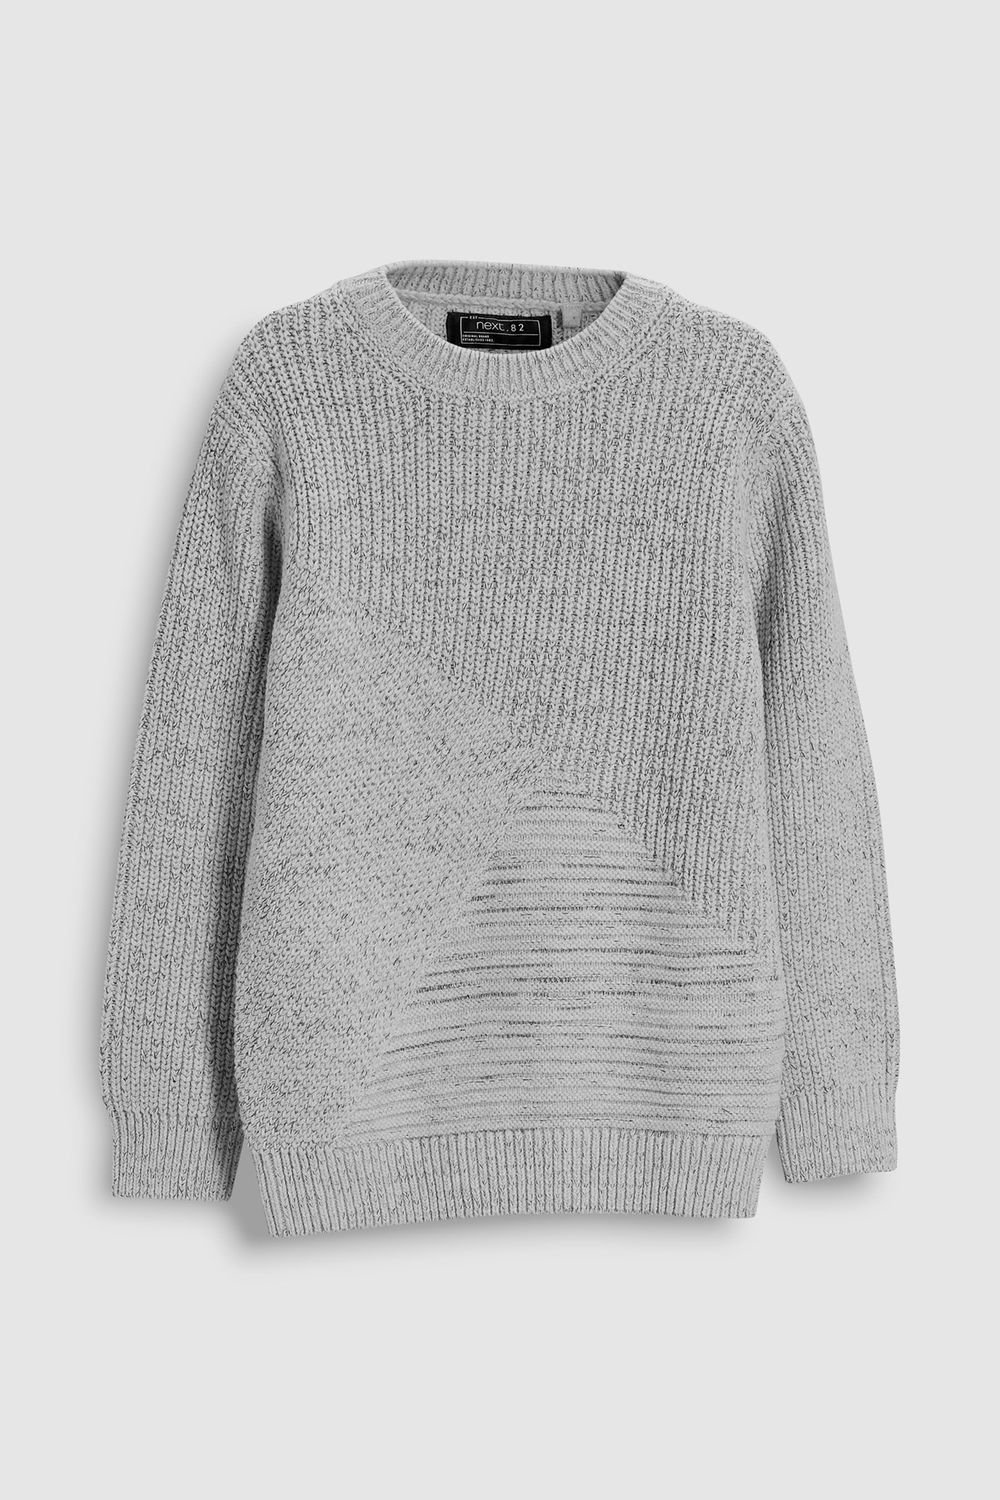 52d887854 Next Textured Knit Crew Neck Sweater (3-16yrs) Online